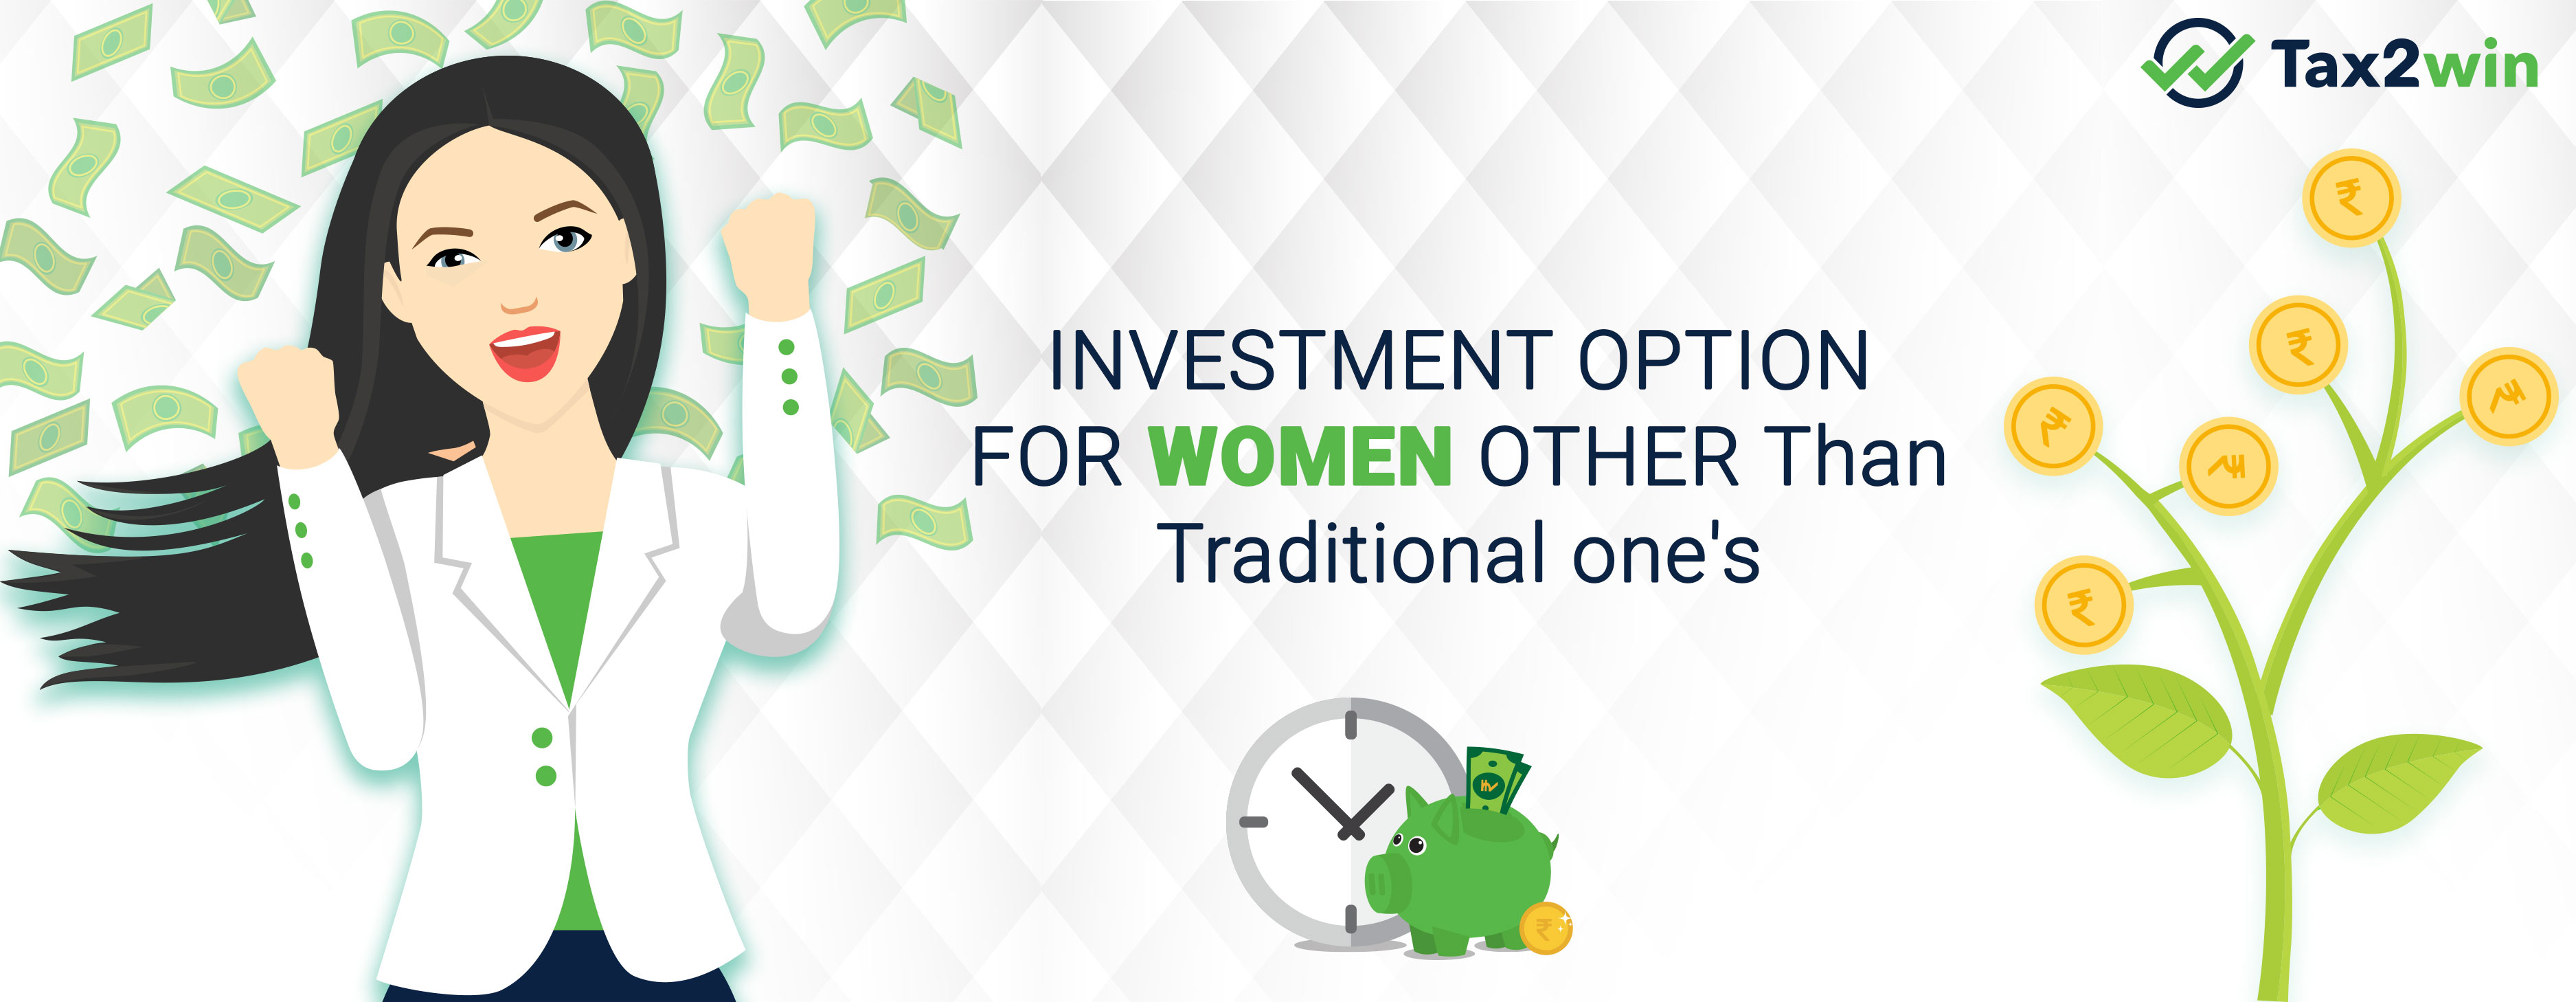 Investment options for females